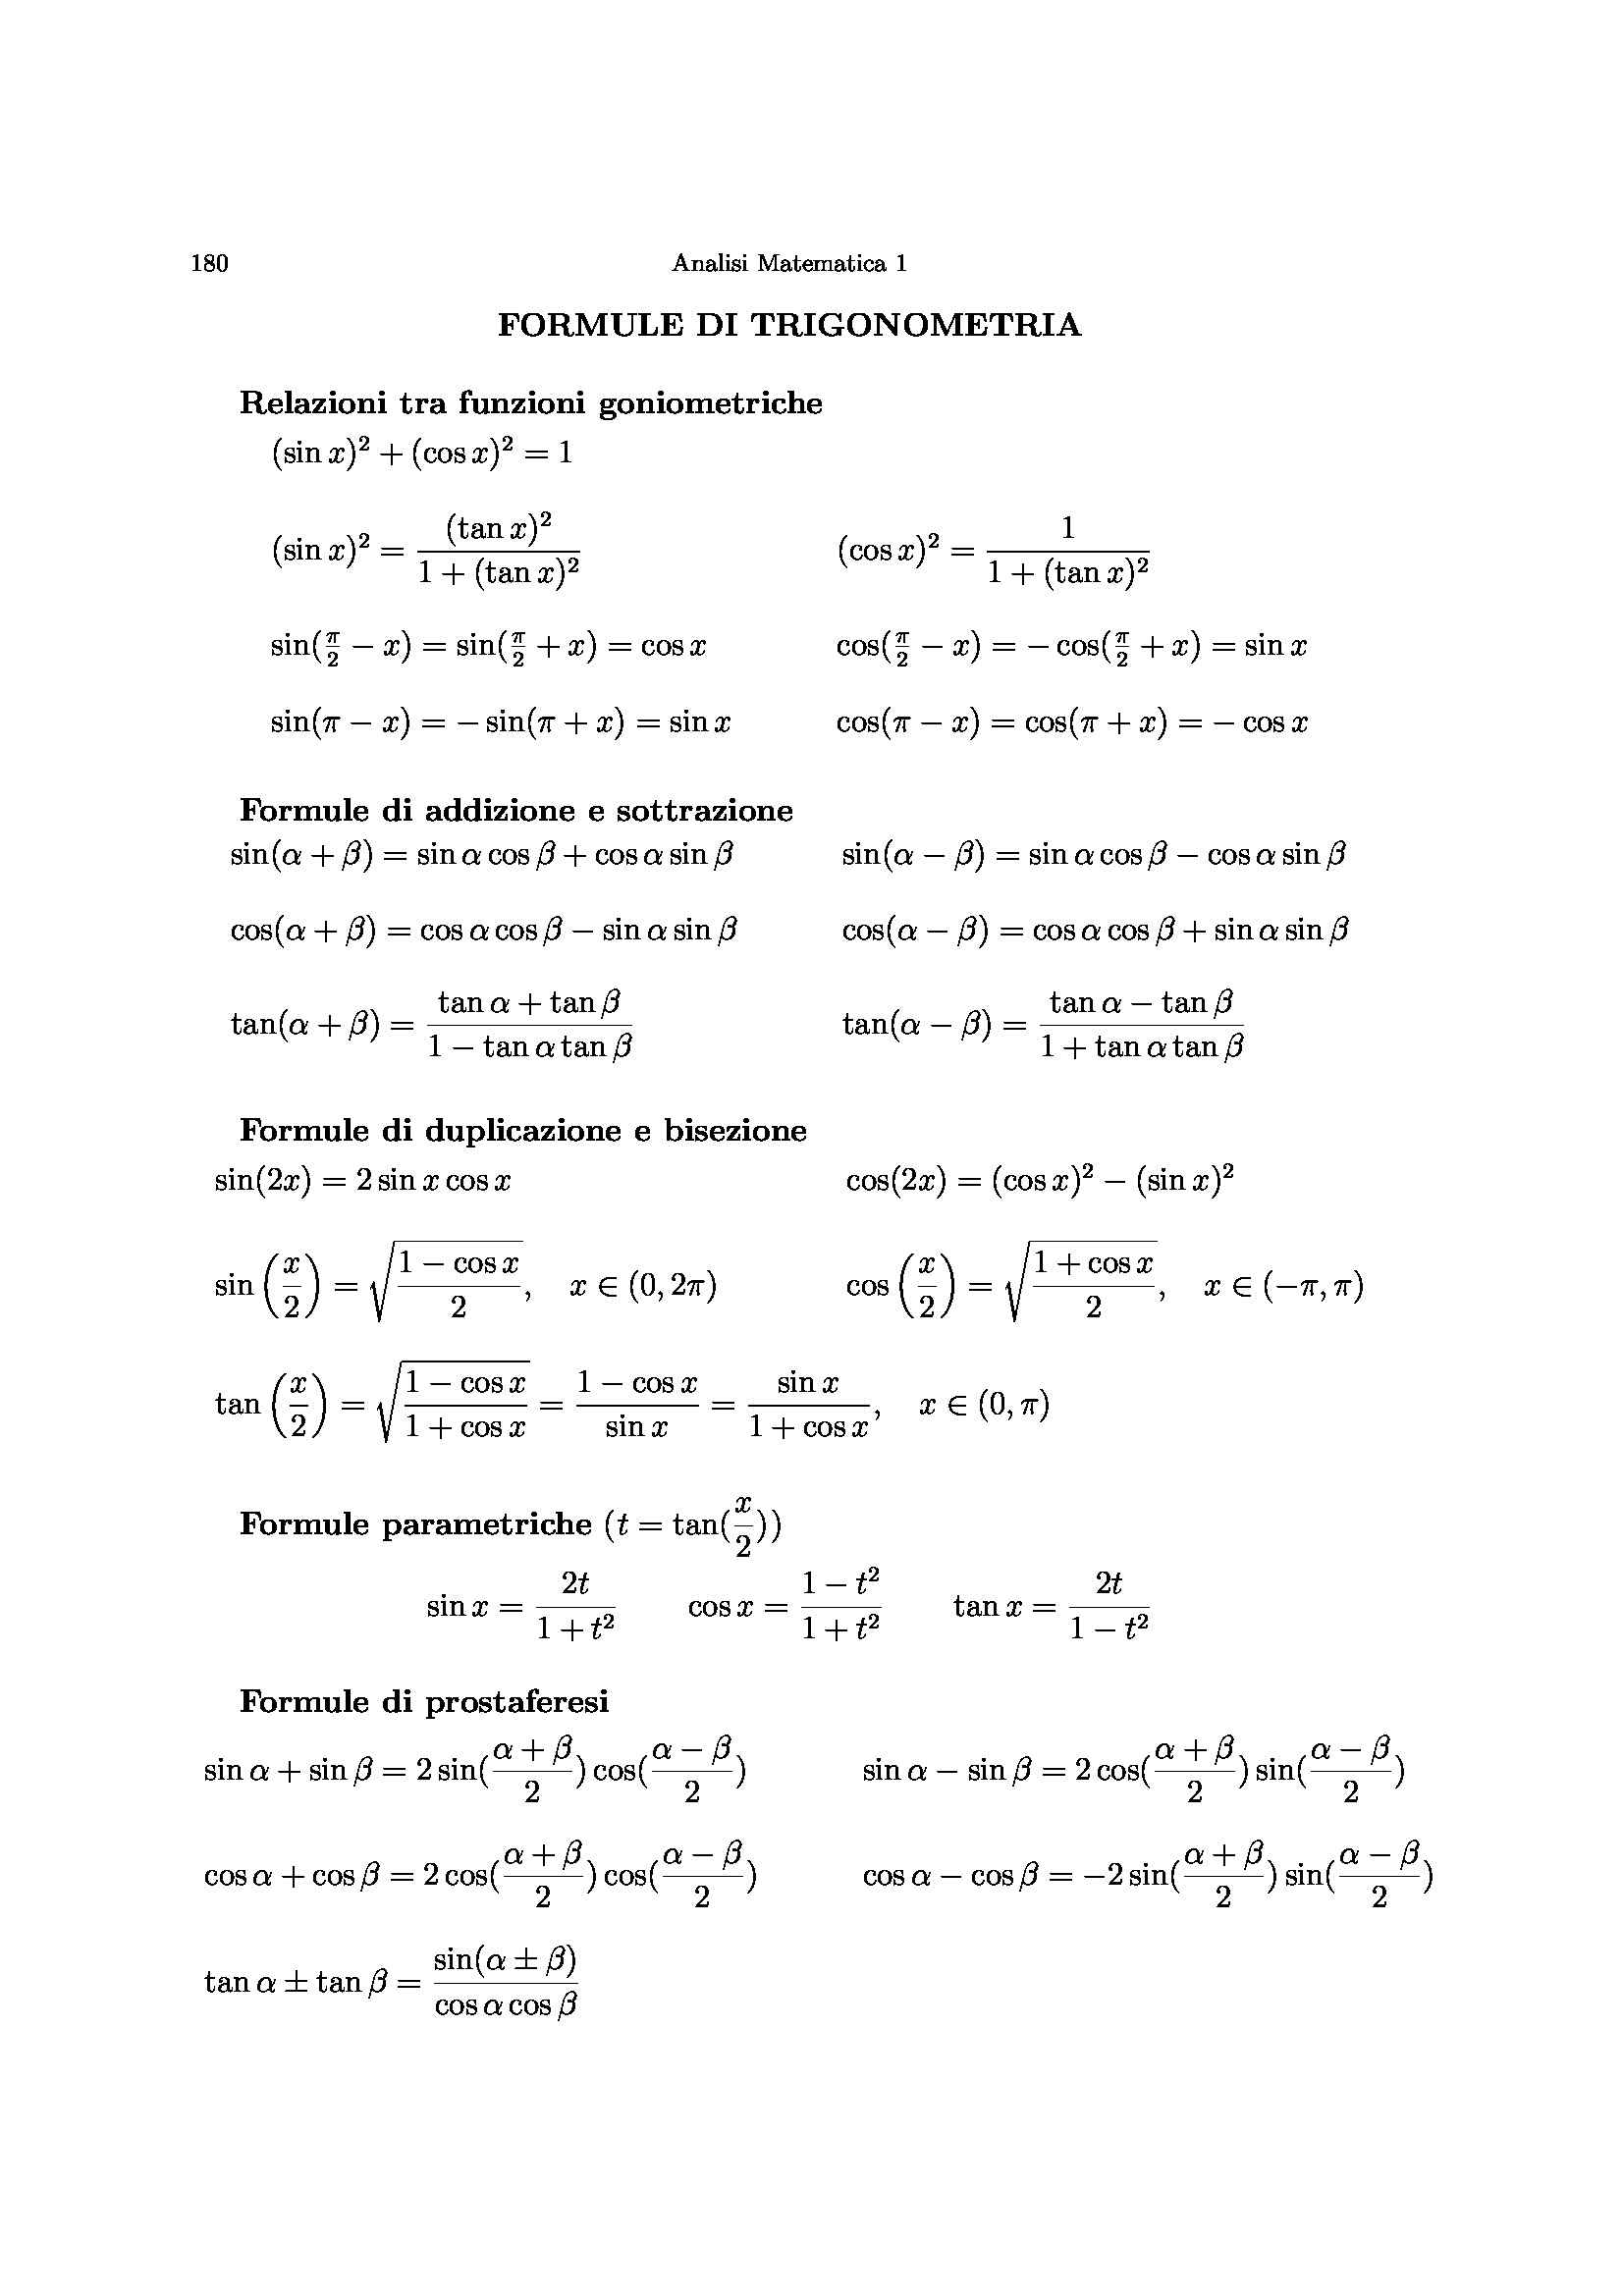 Formule analisi 1